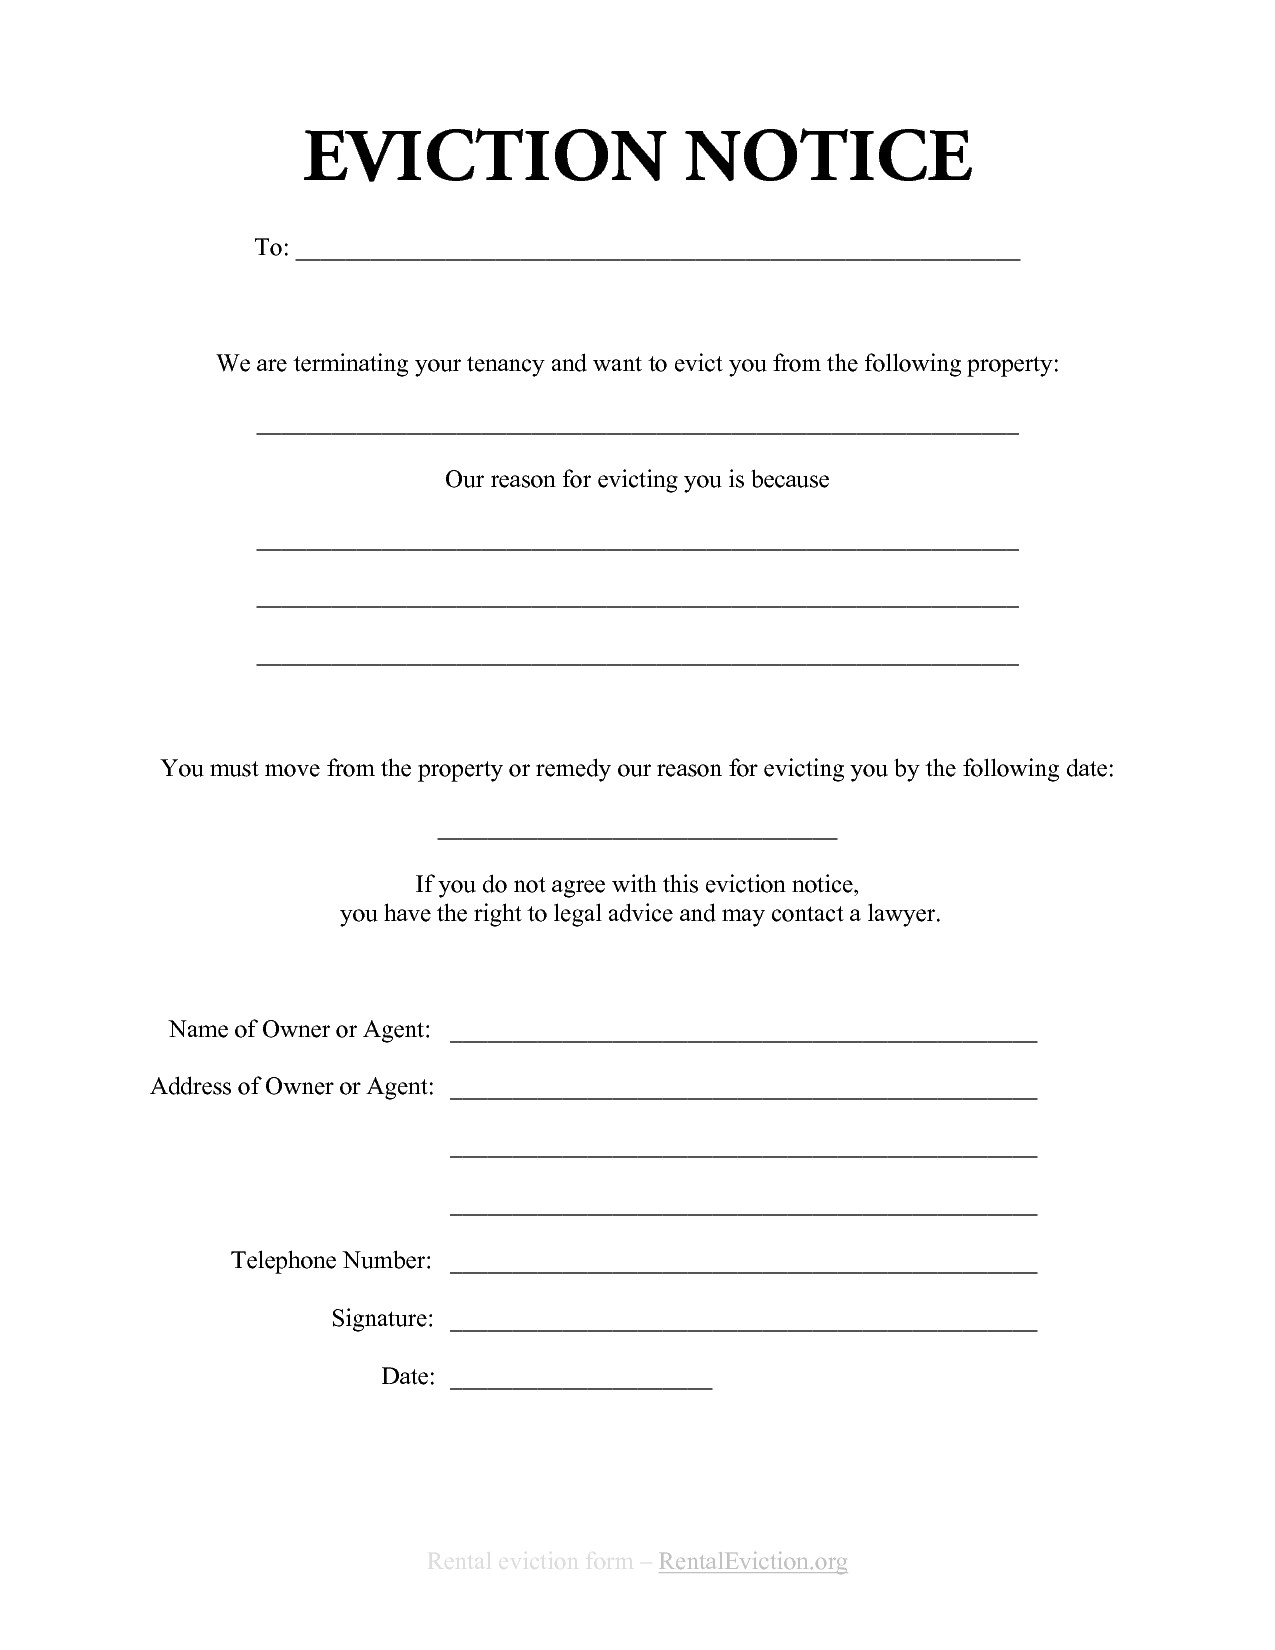 Eviction Notice Letter Template - Eviction Notice Template Alberta Free